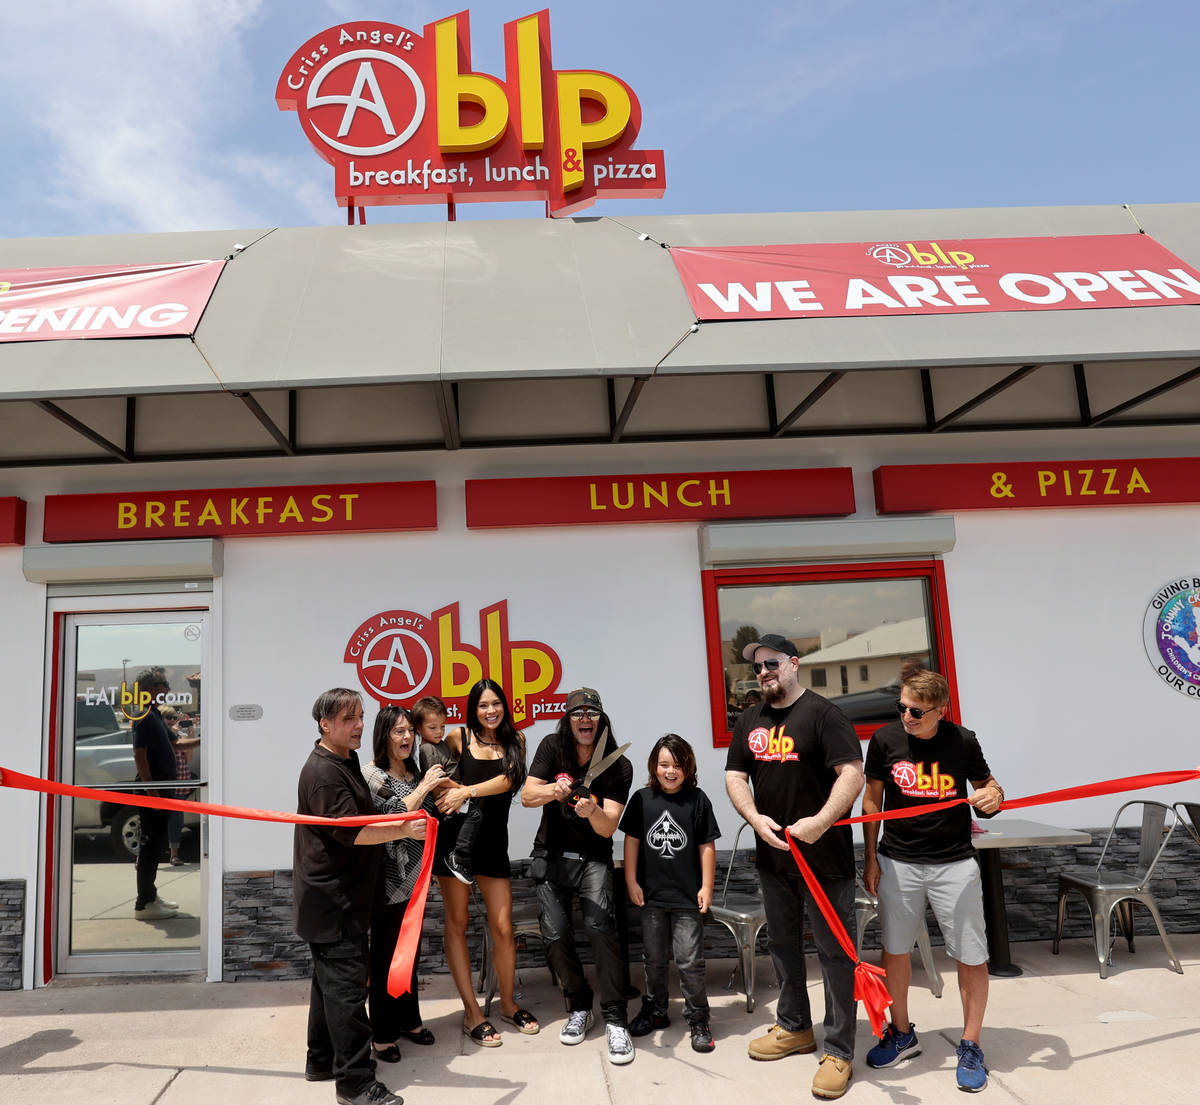 Criss Angel cuts the ribbon at his new restaurant, CABLP, in Overton during the grand opening F ...